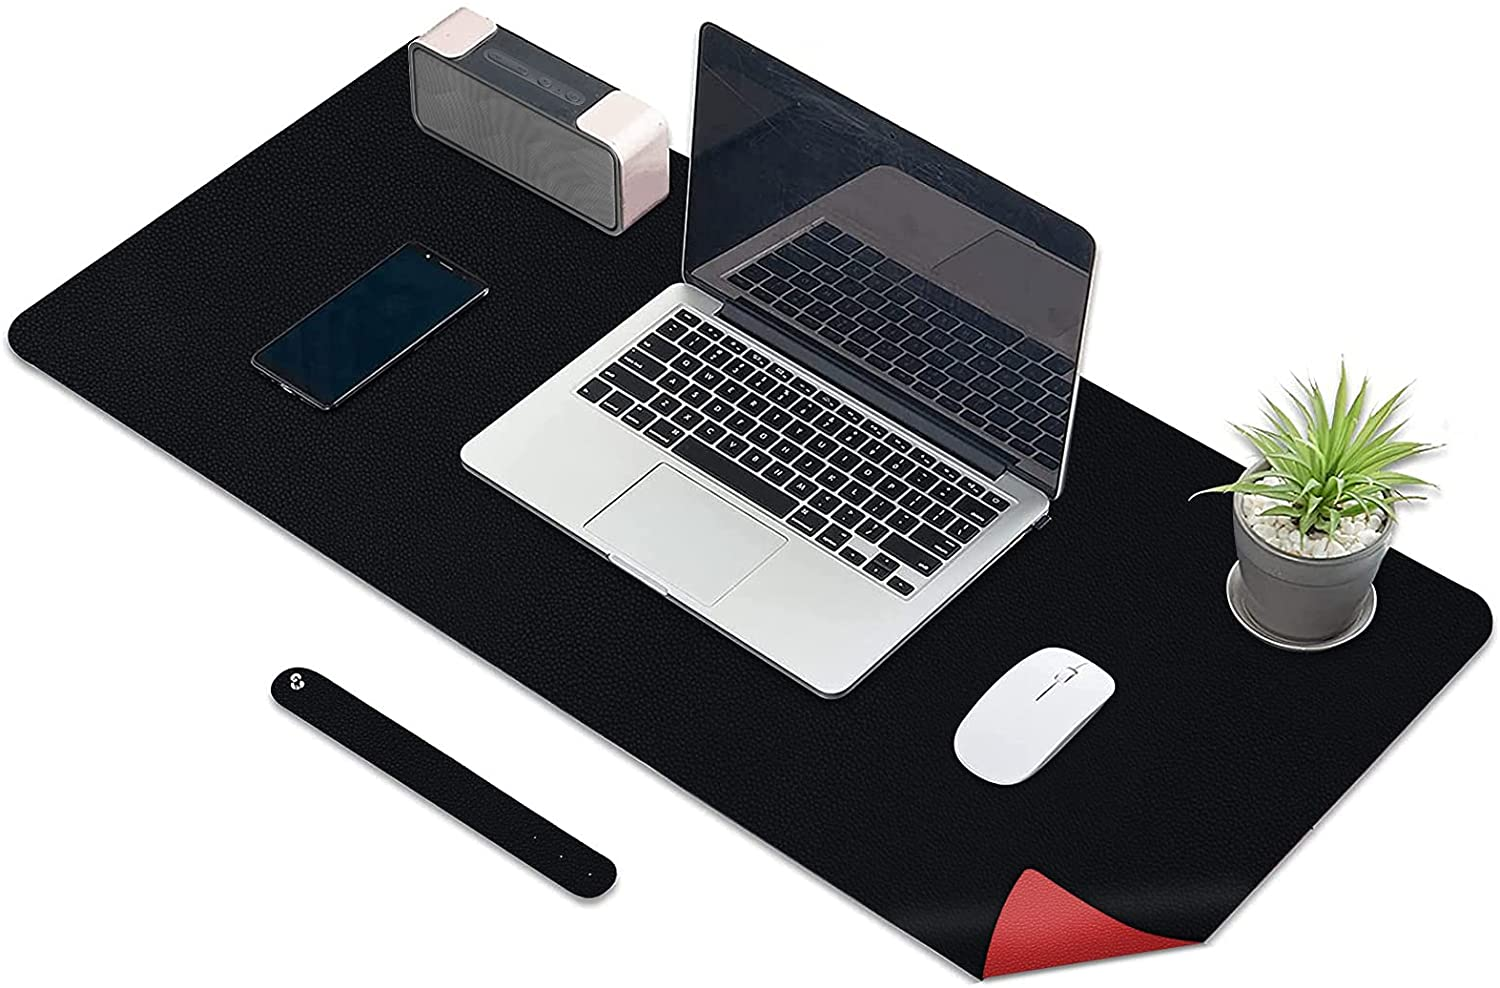 KINGFOM Outlet ☆ Free Shipping Multifunctional Office Memphis Mall Desk Pad Waterproof Protector Pu